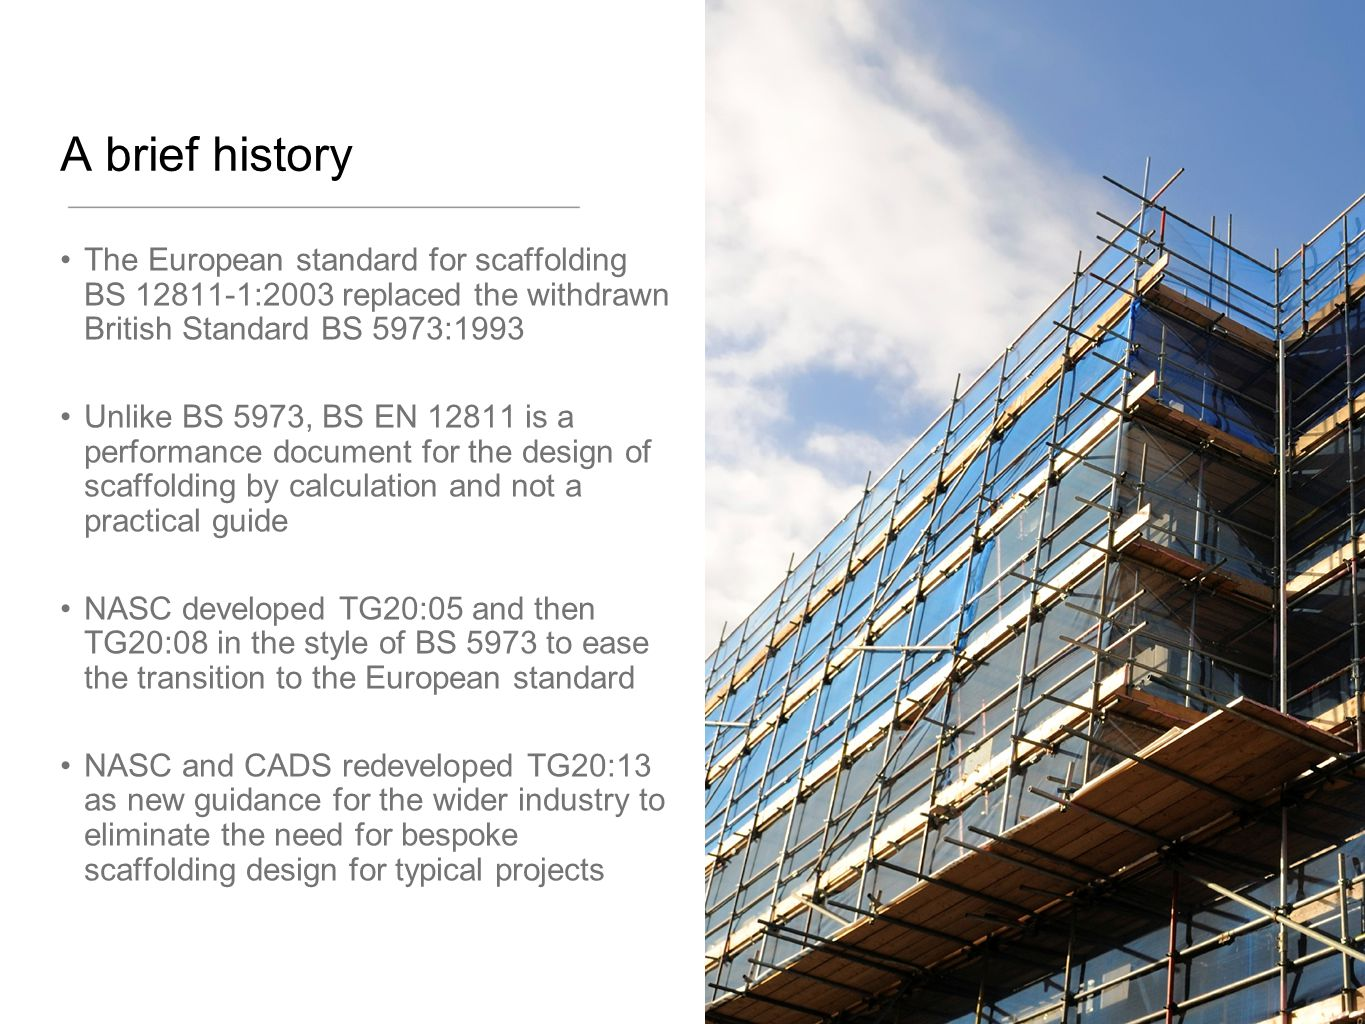 A brief history The European standard for scaffolding BS 12811-1:2003 replaced the withdrawn British Standard BS 5973:1993.